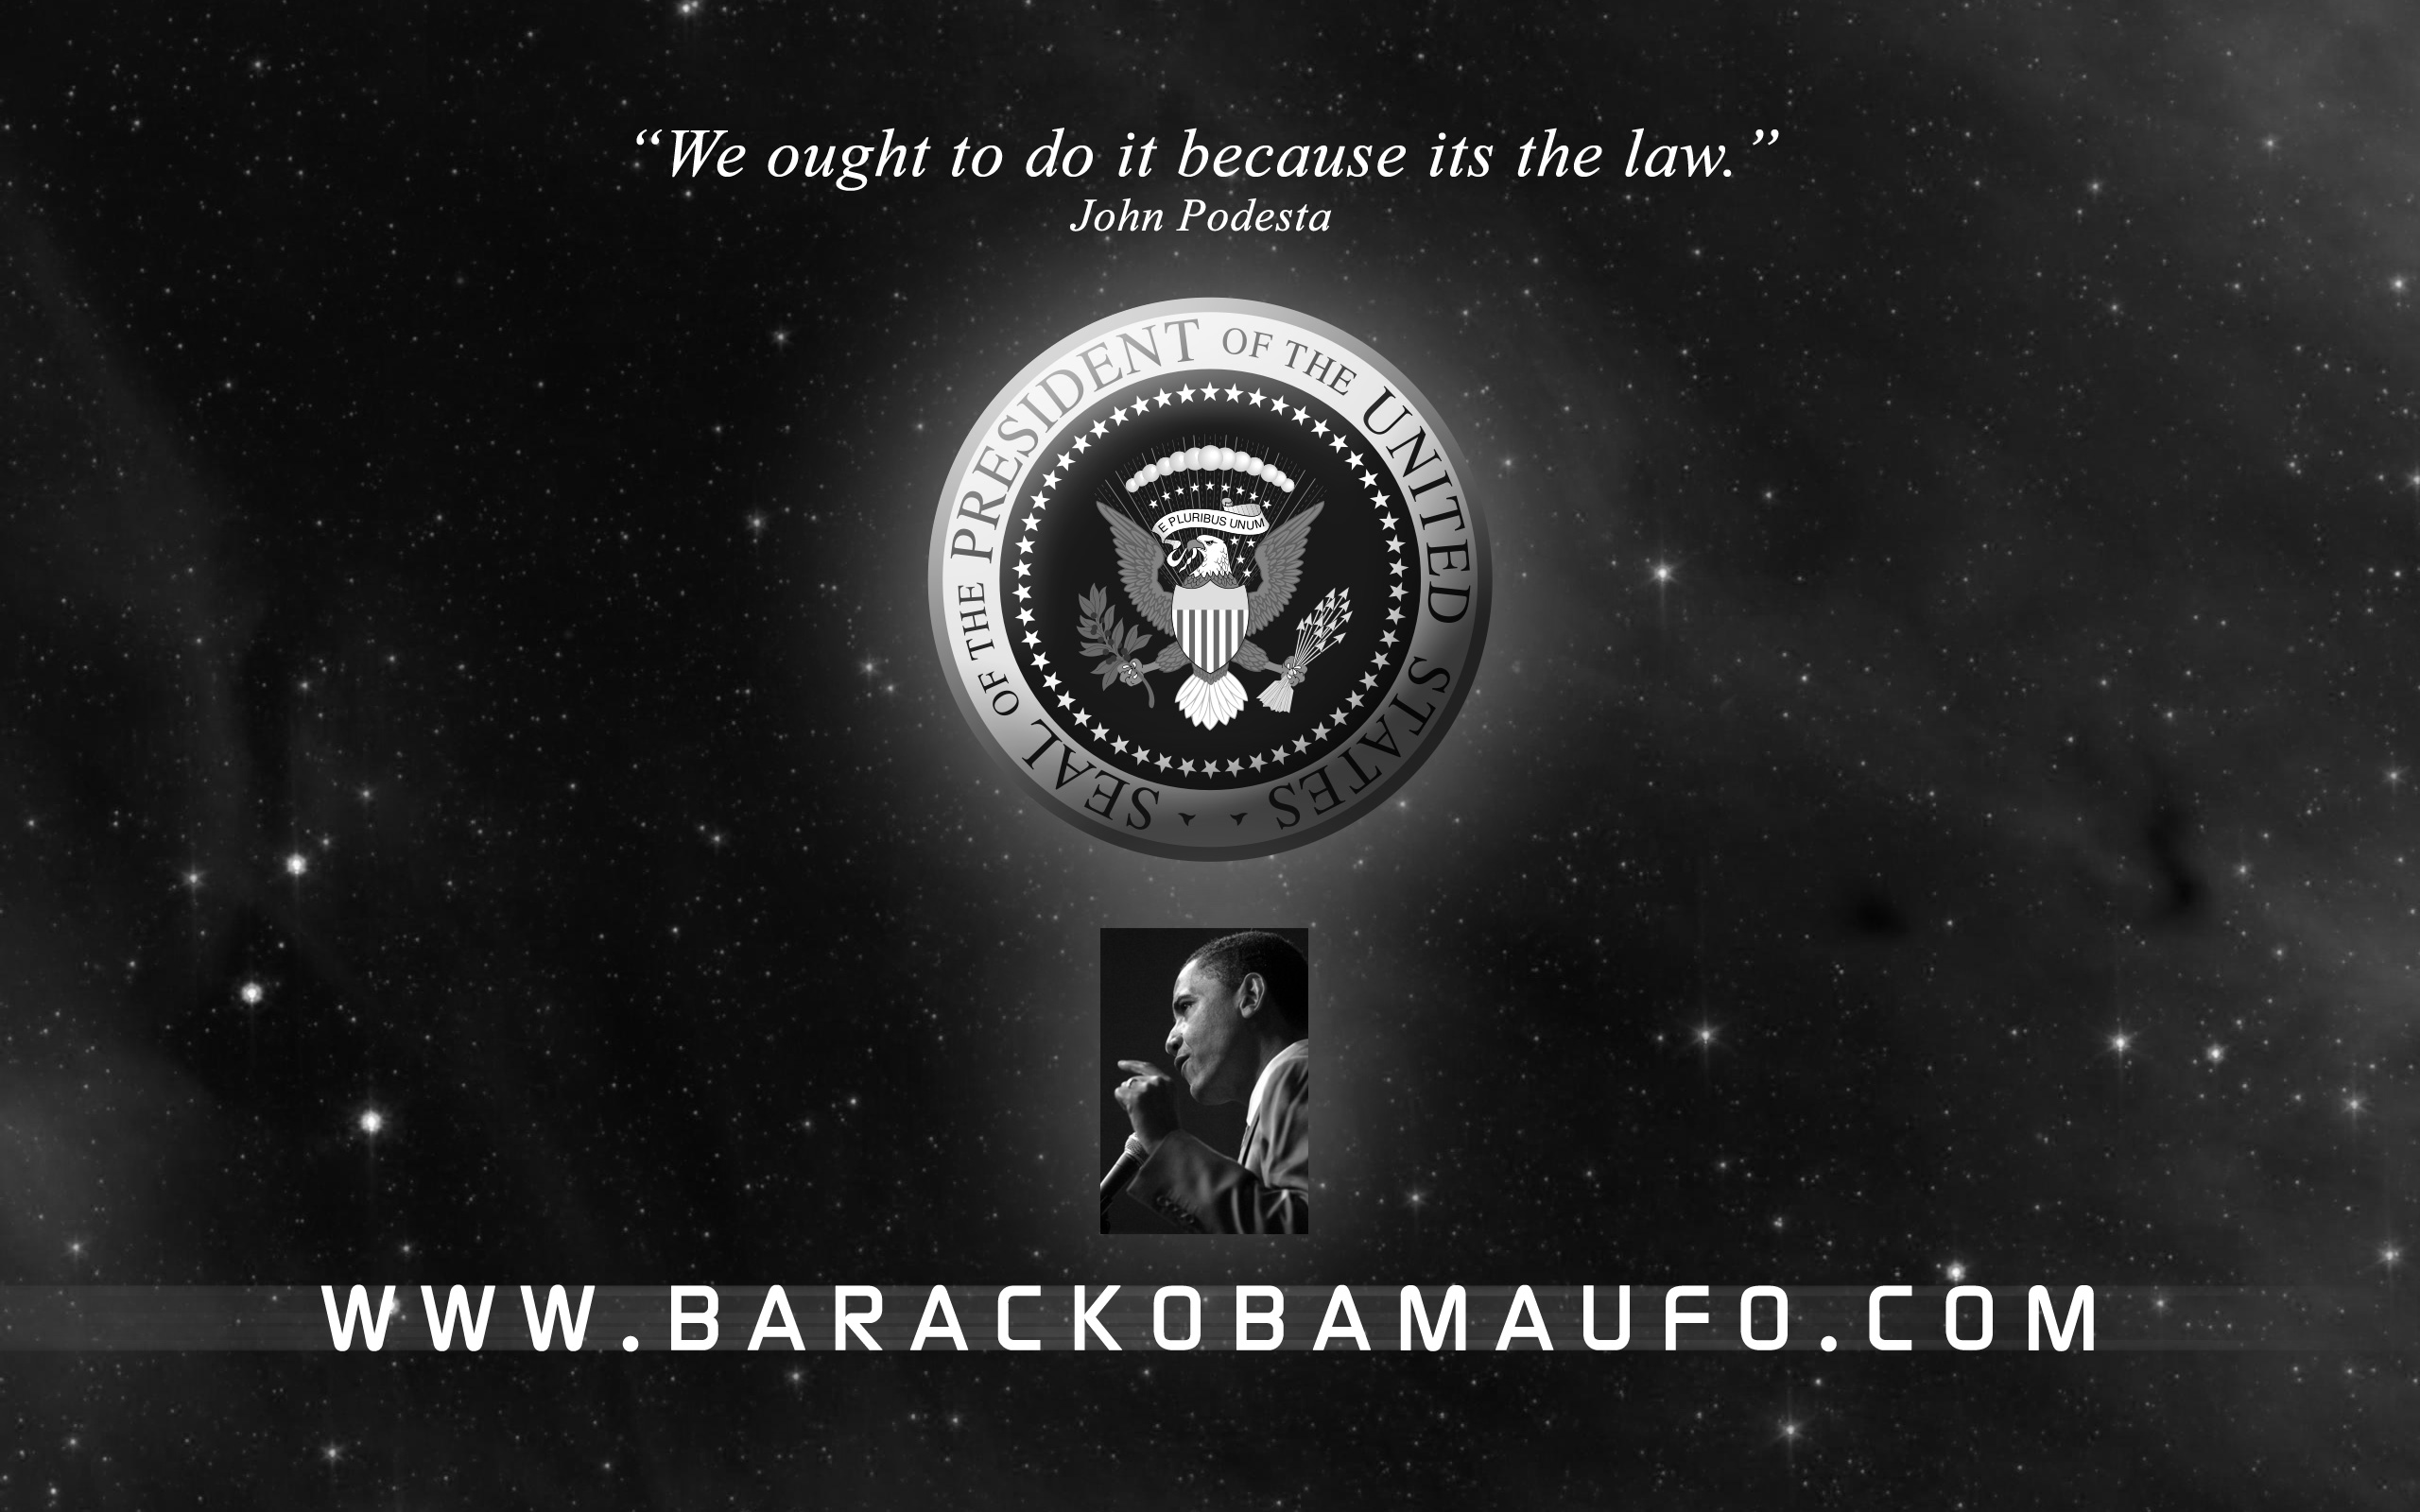 Barackobama Ufo | BACKGROUND for Ufo Black Background  568zmd